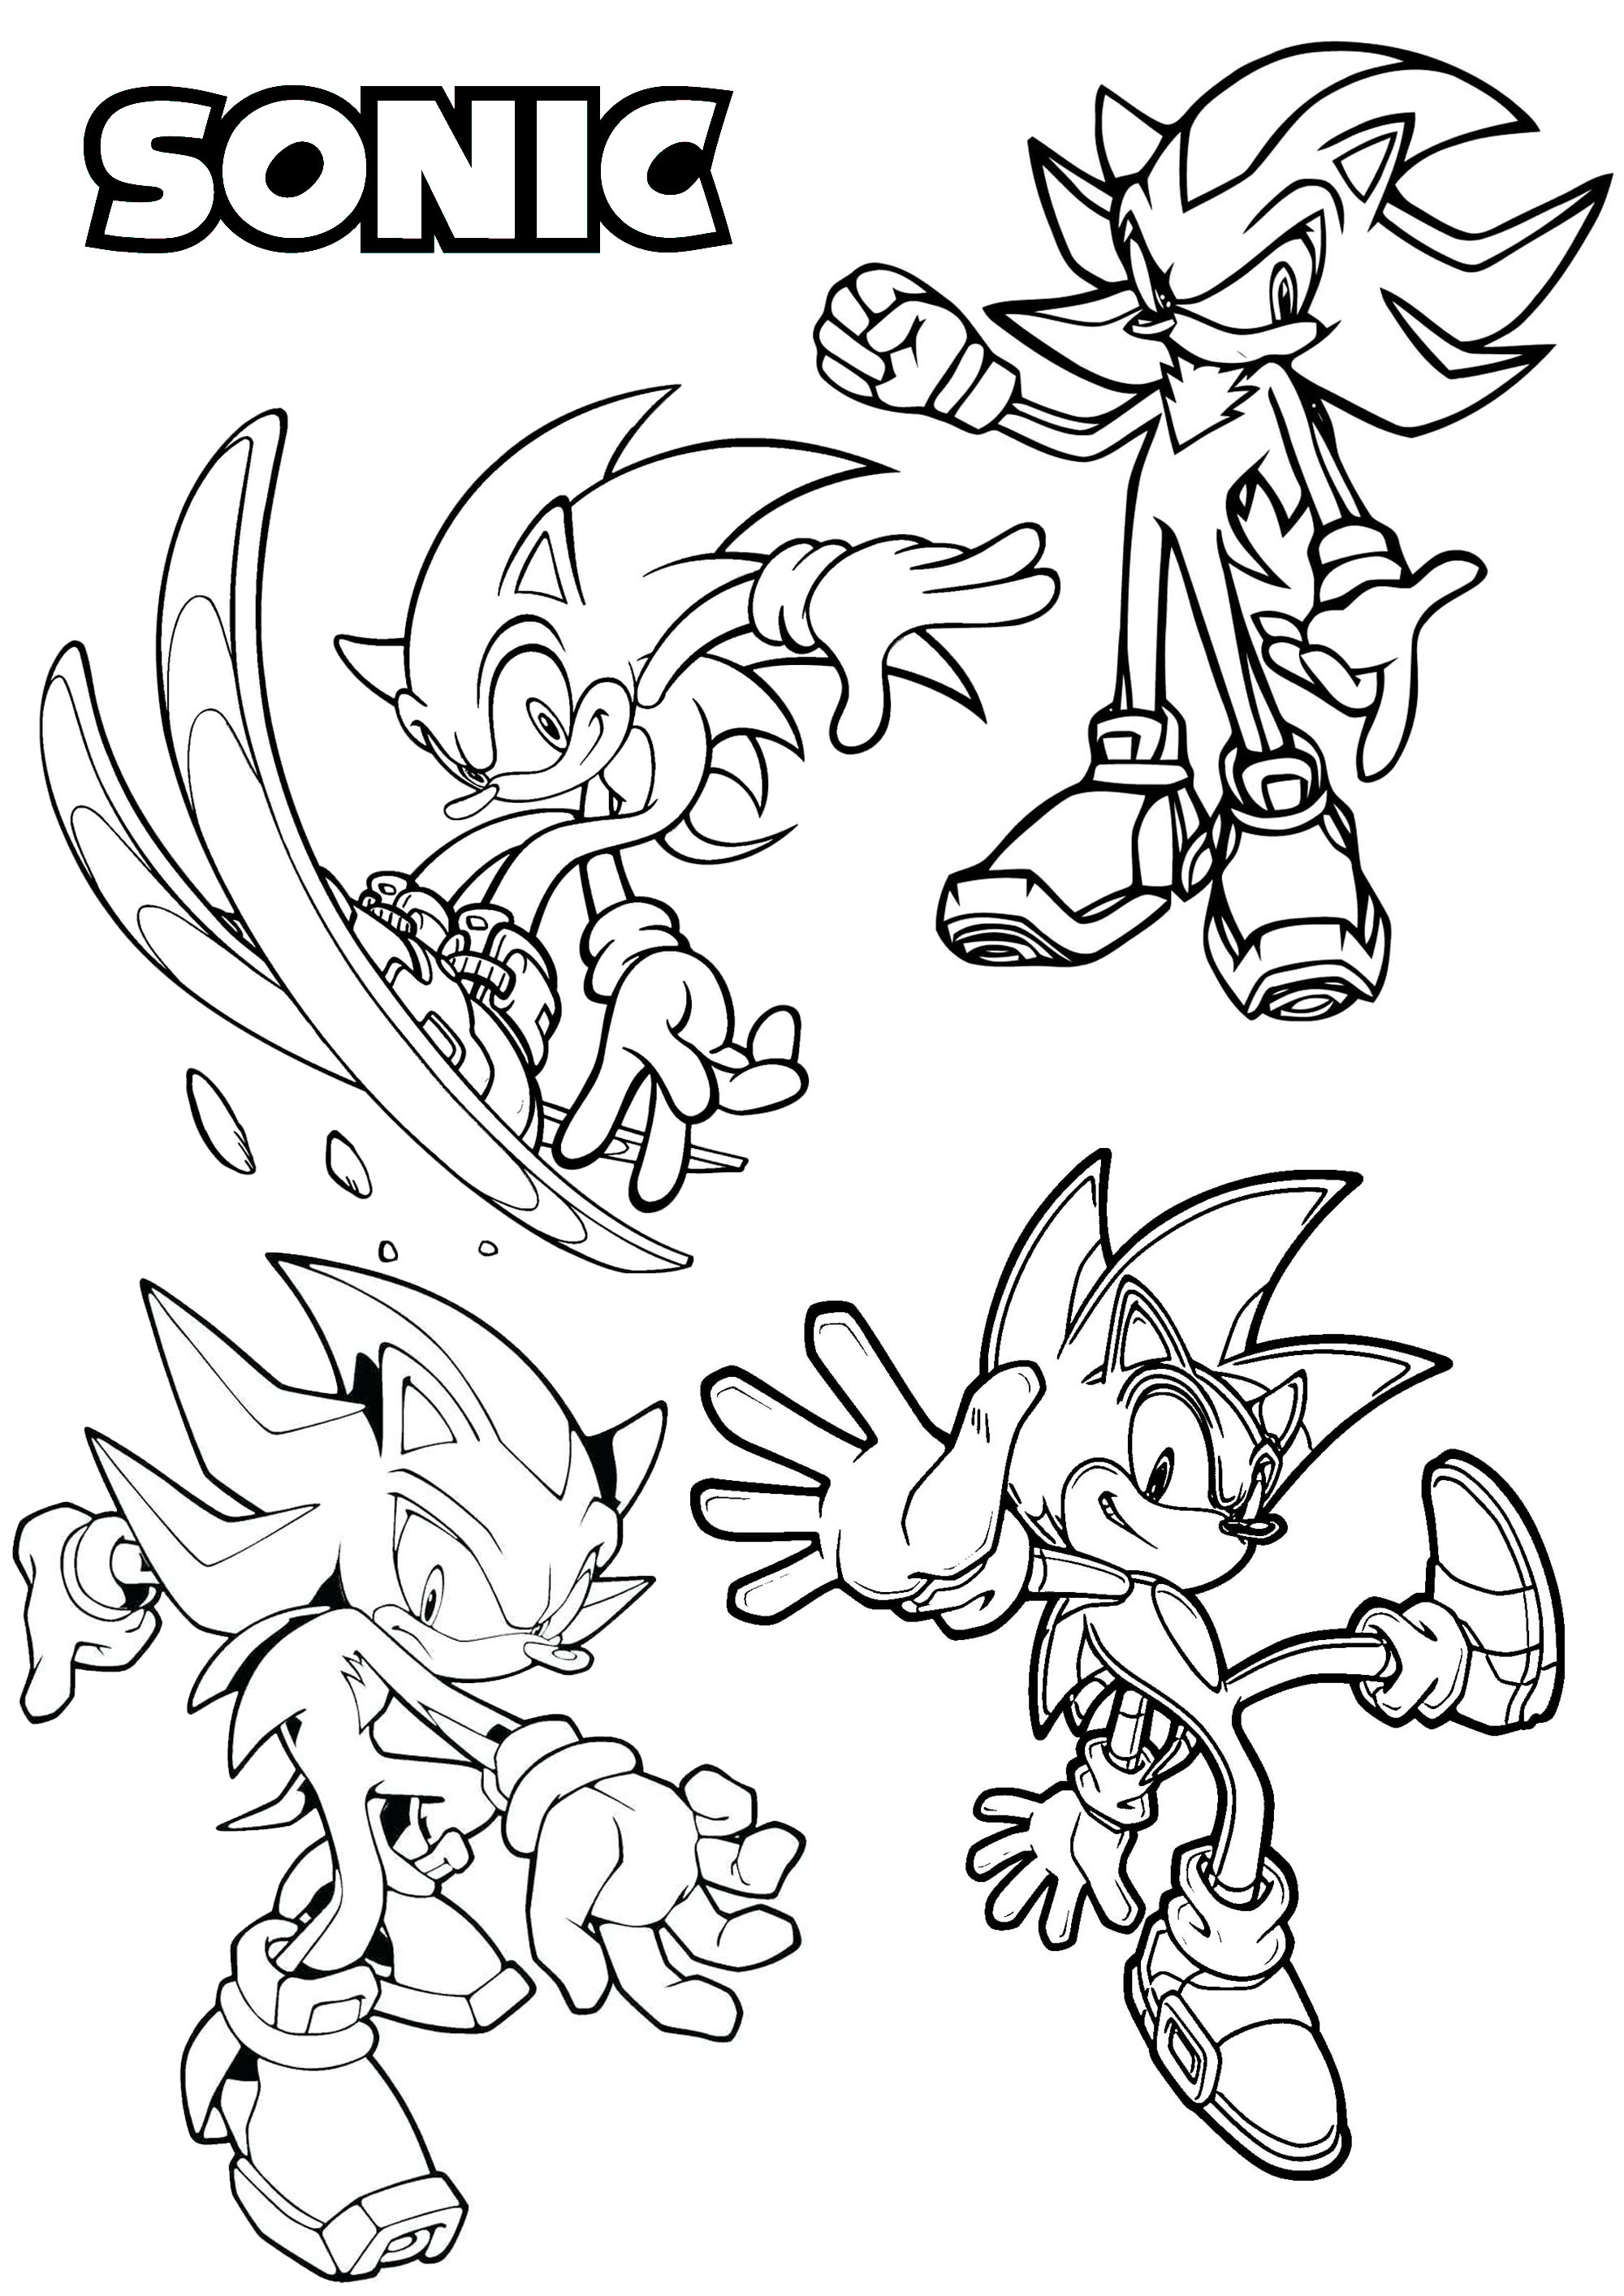 Sonic, the fastest hedgehog on the planet is about to be colored ! Go ahead !